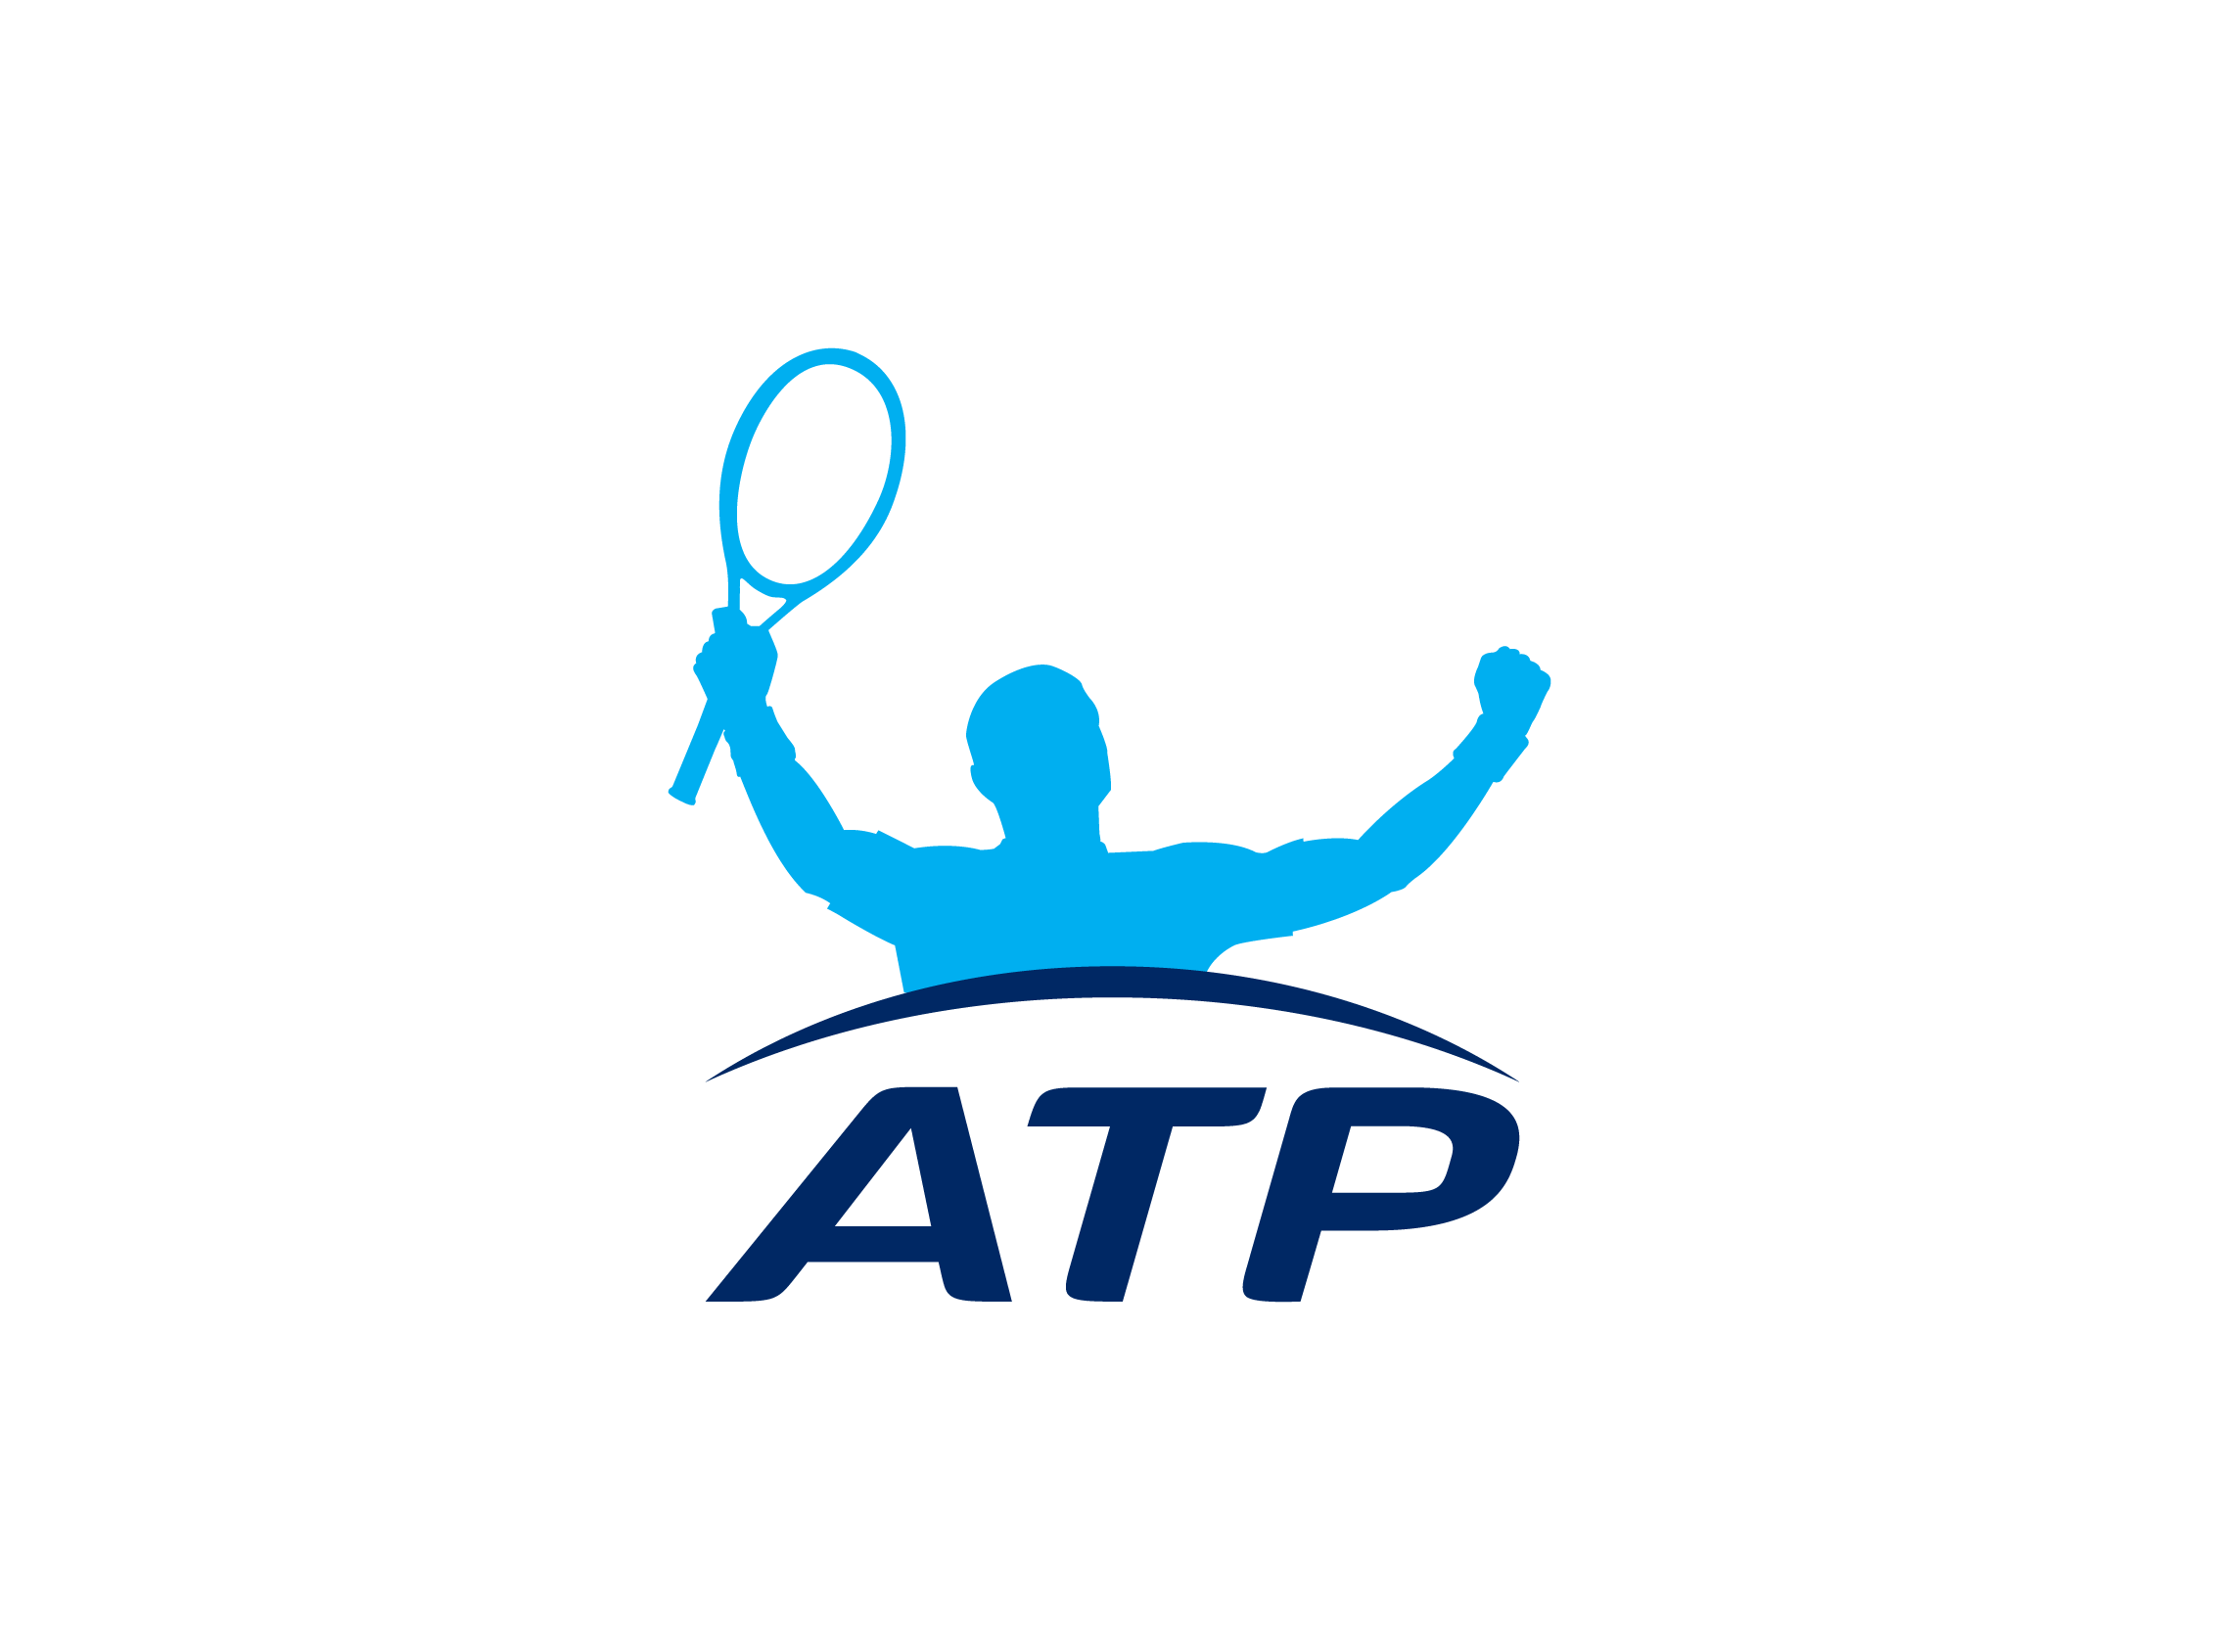 Djokovic Misses Out As Nominations Announced For The Atp Awards Ubitennis